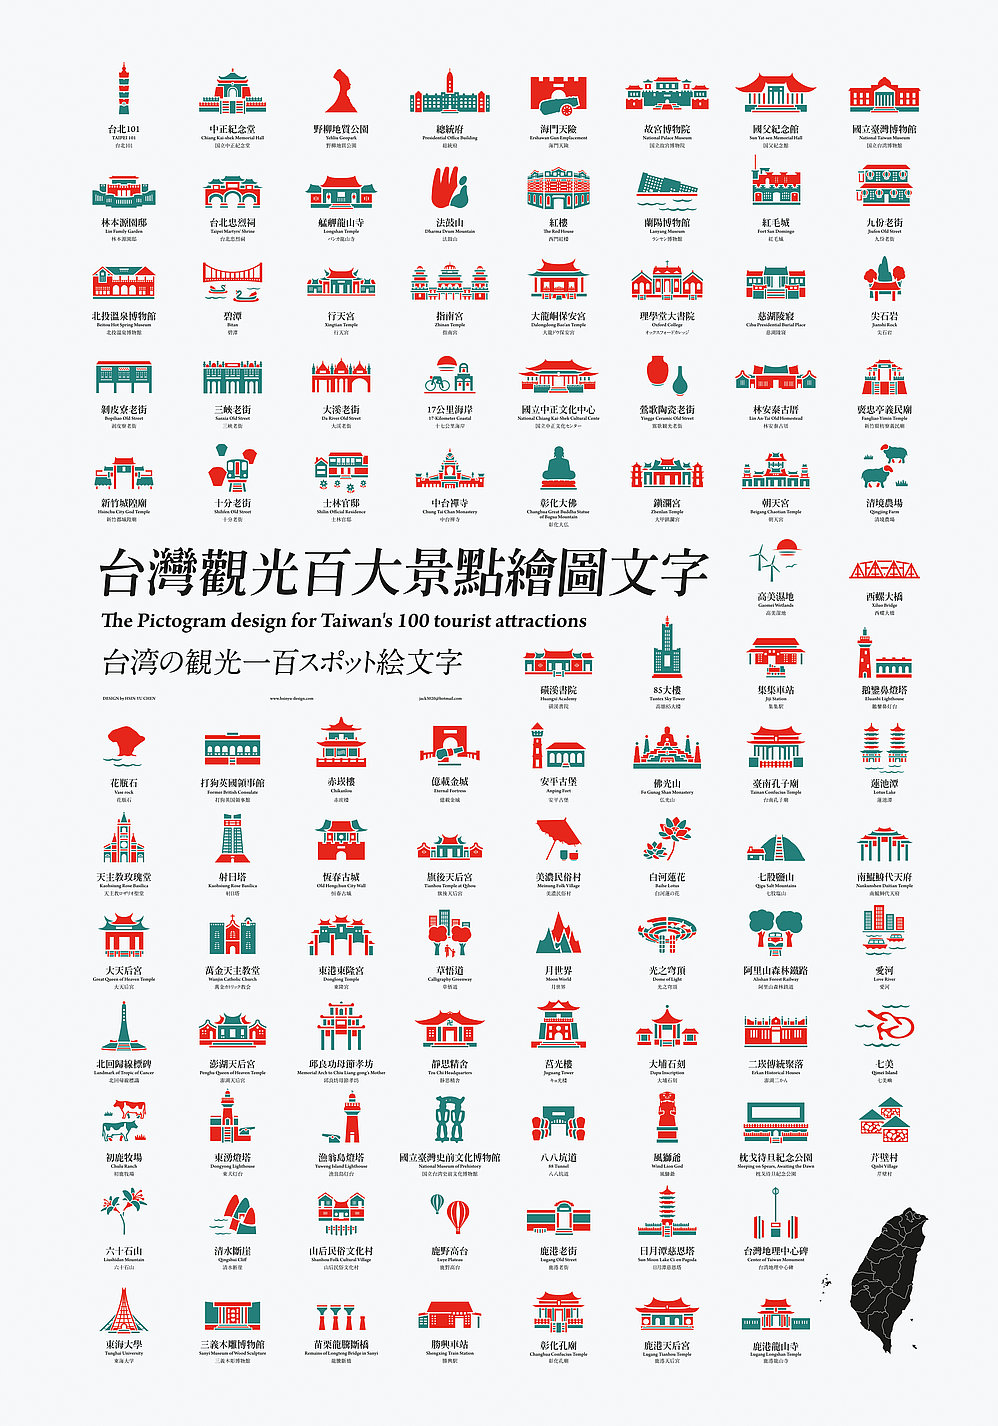 The Pictogram design for Taiwan's 100 tourist attractions | Red Dot Design Award